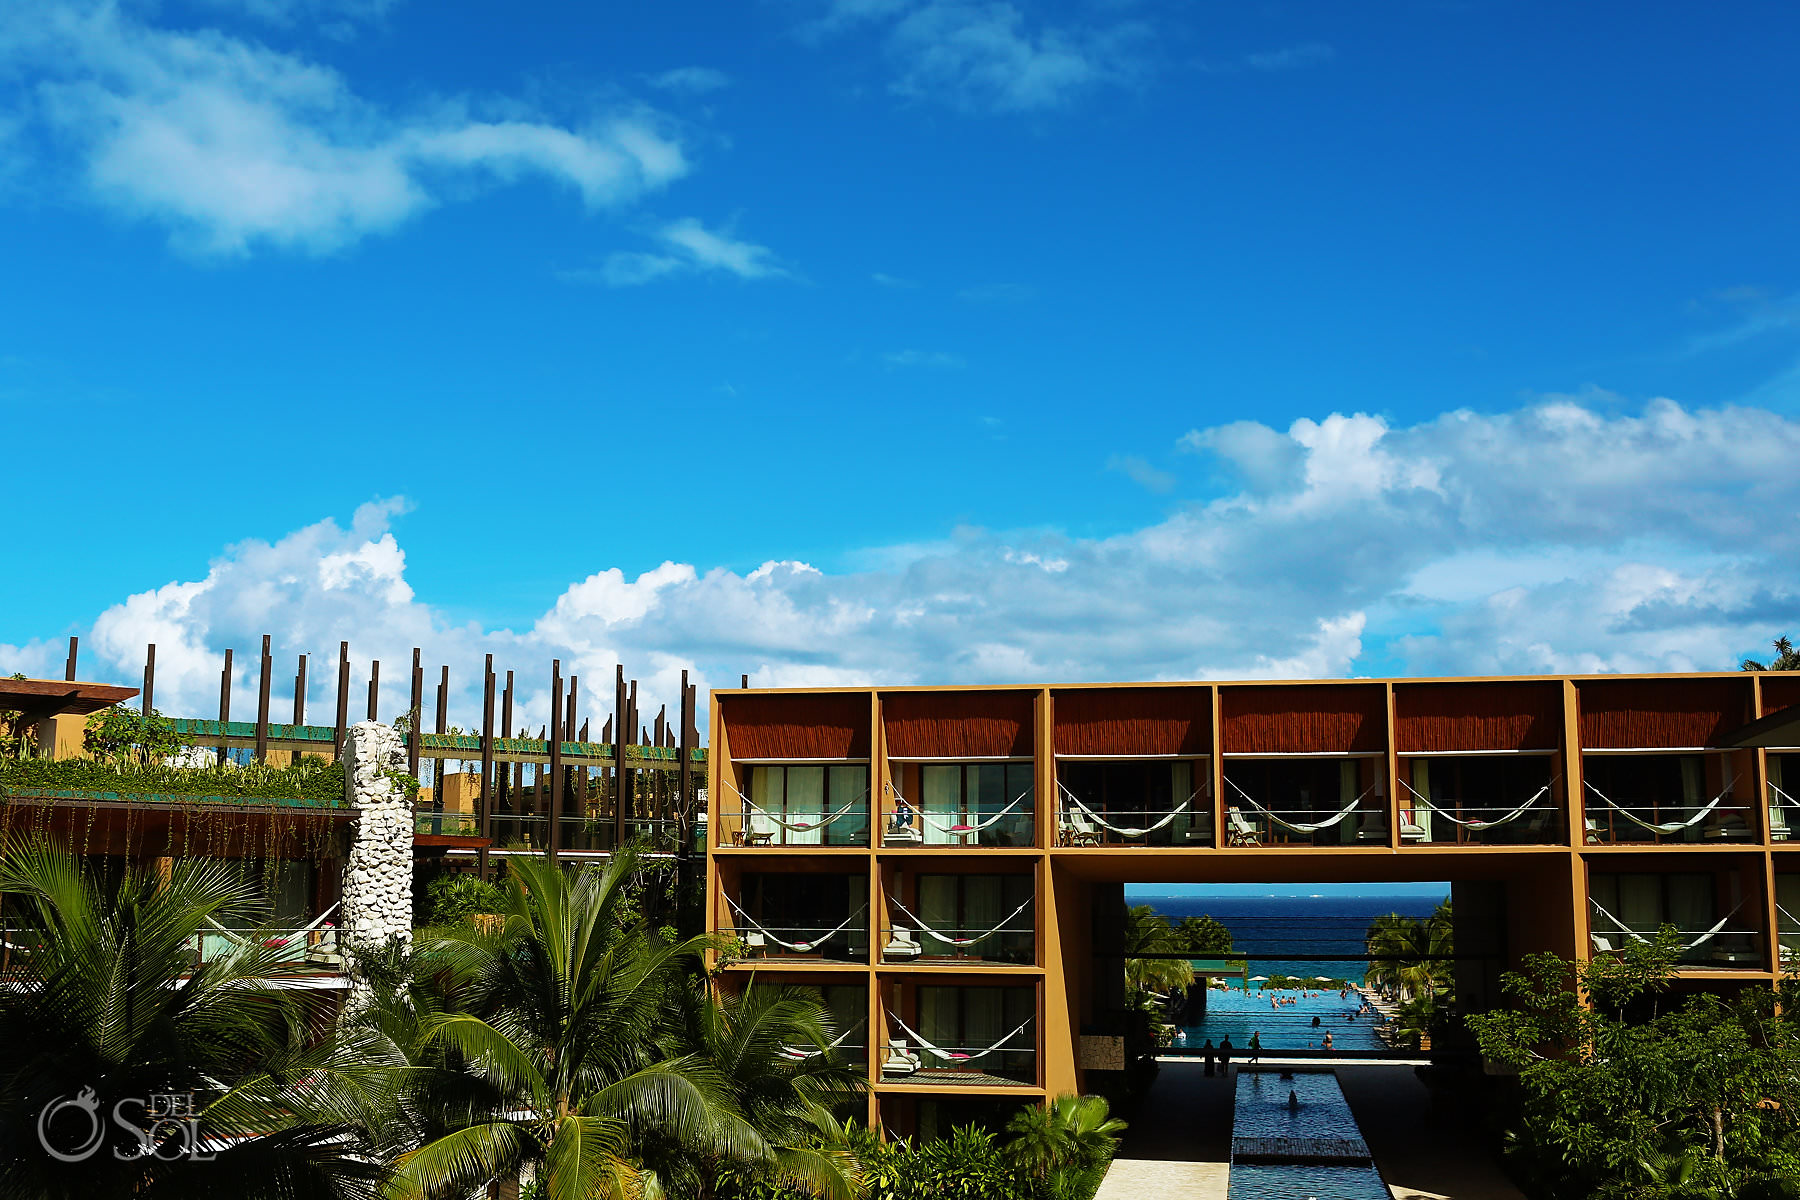 Hotel Xcaret Mexico Wedding venue all inclusive resort Playa del Carmen Mexico